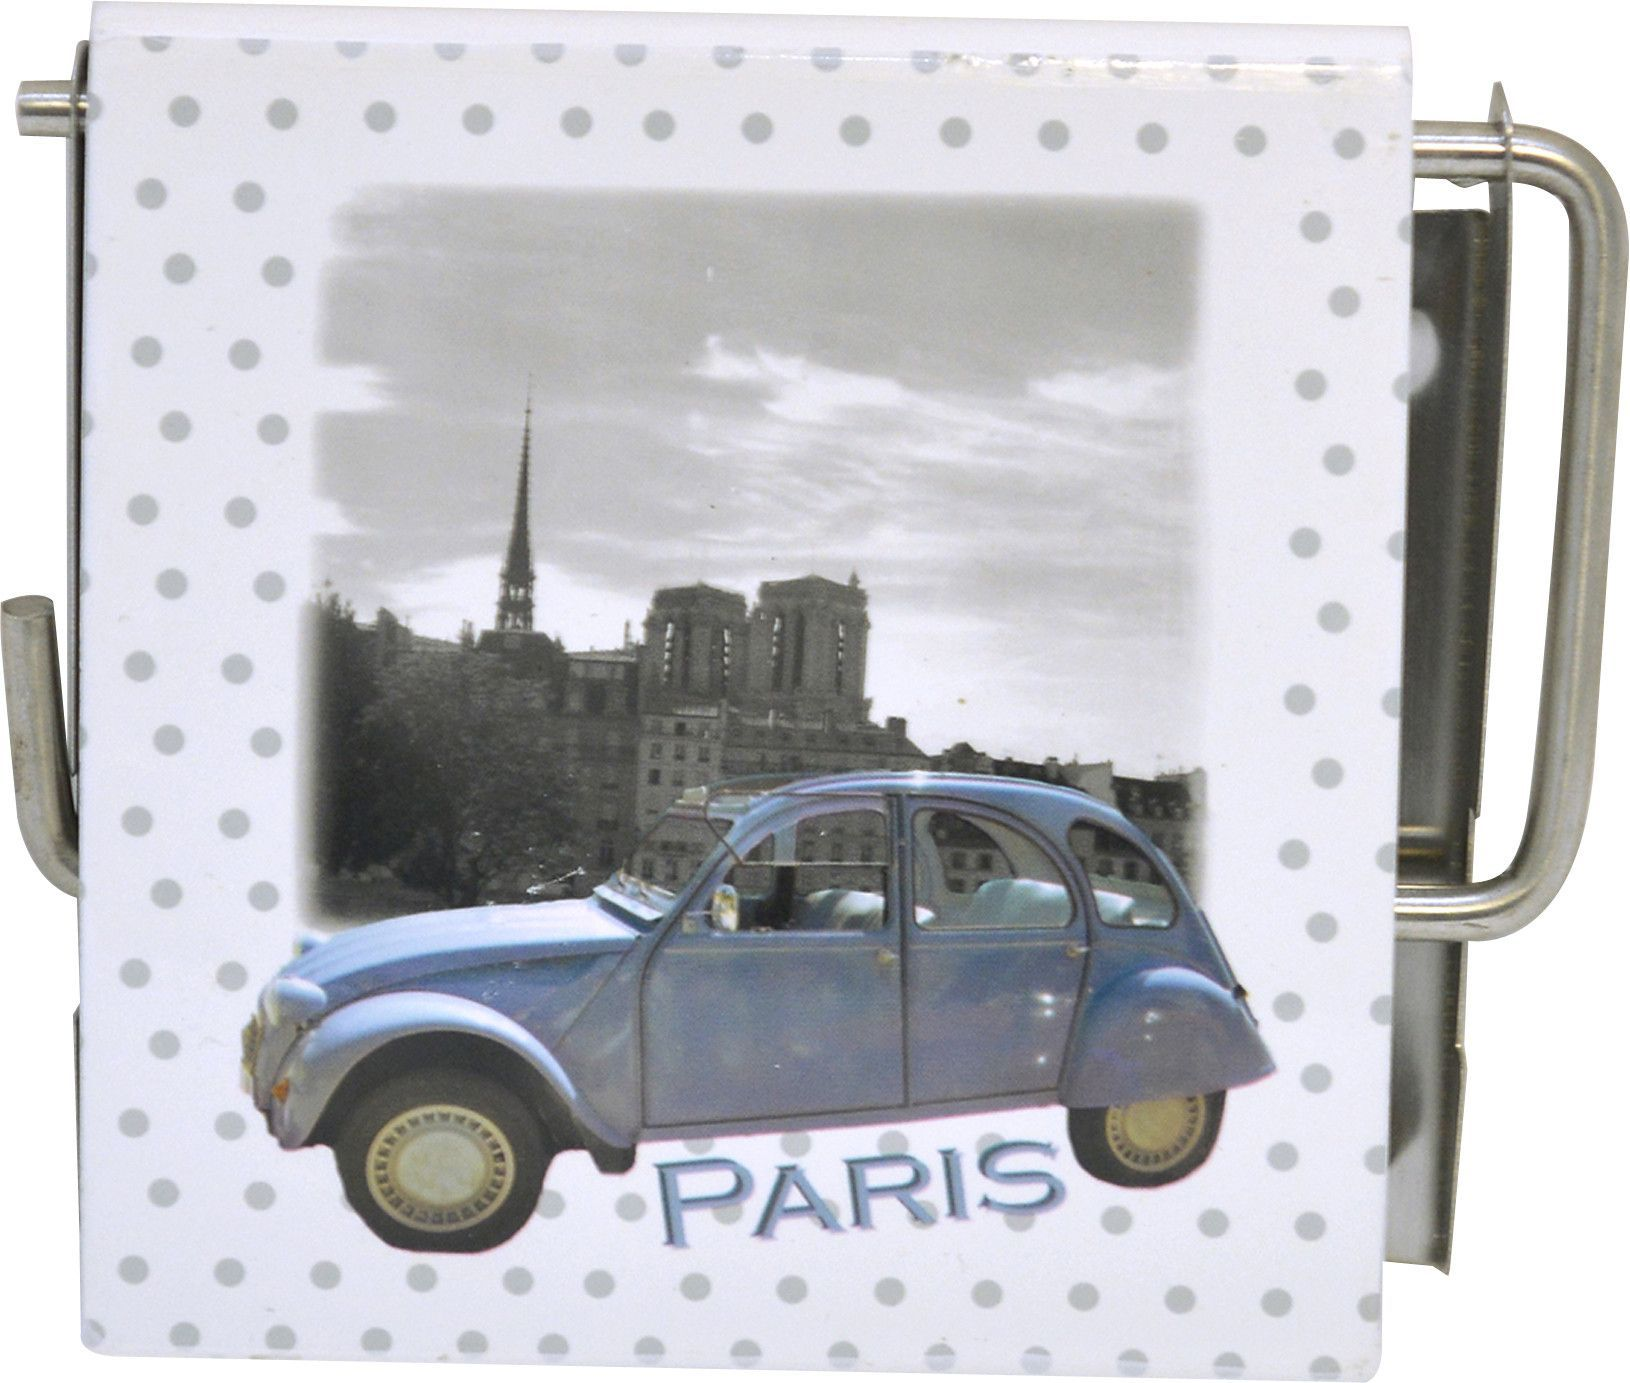 Paris Romance Wall Mounted Printed Toilet Tissue Roll Holder